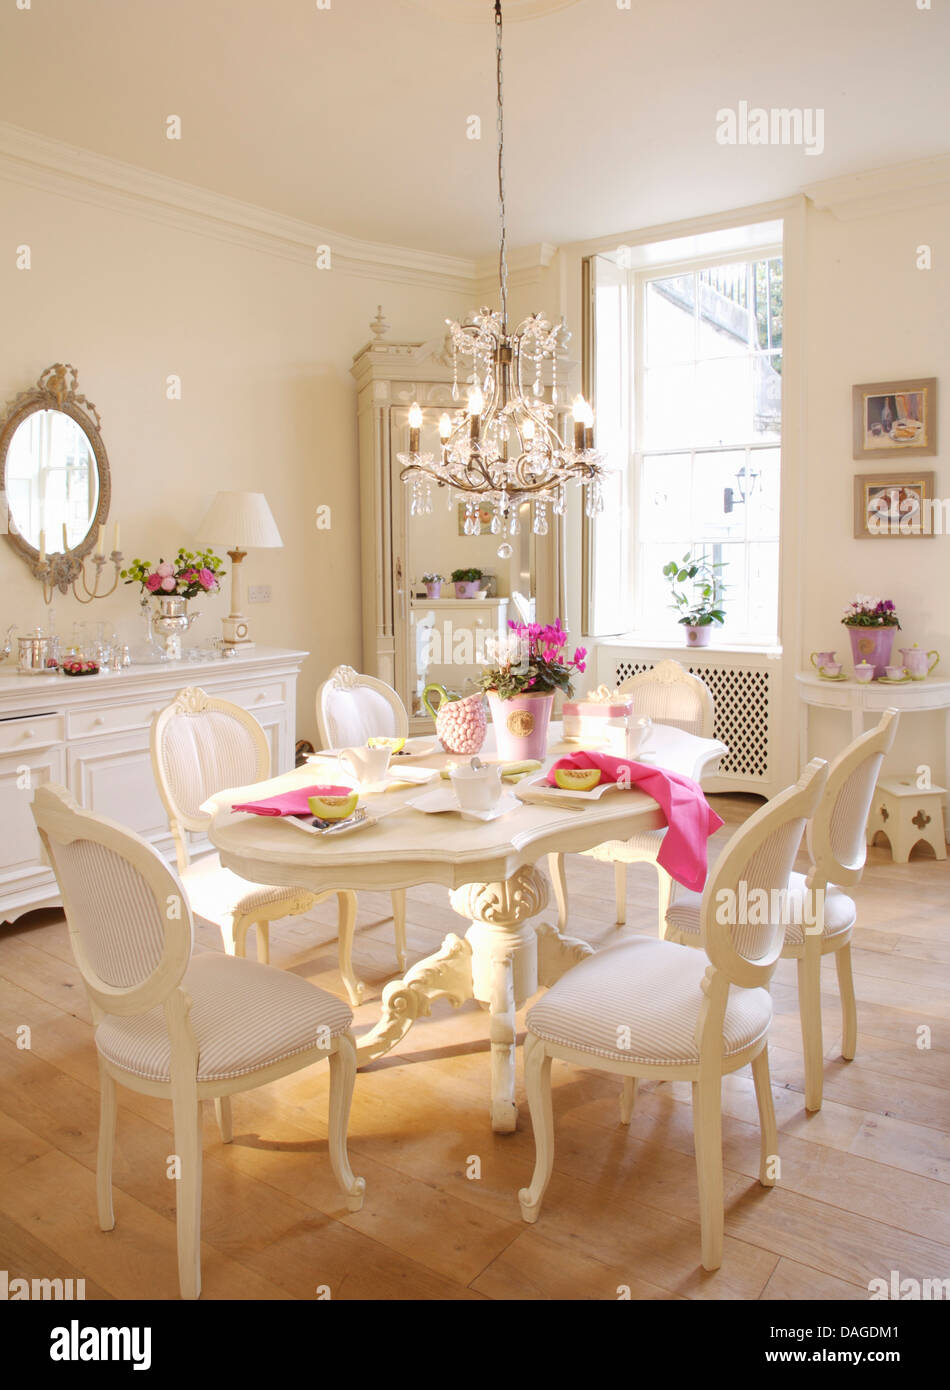 white french style chairs and painted oval table in white